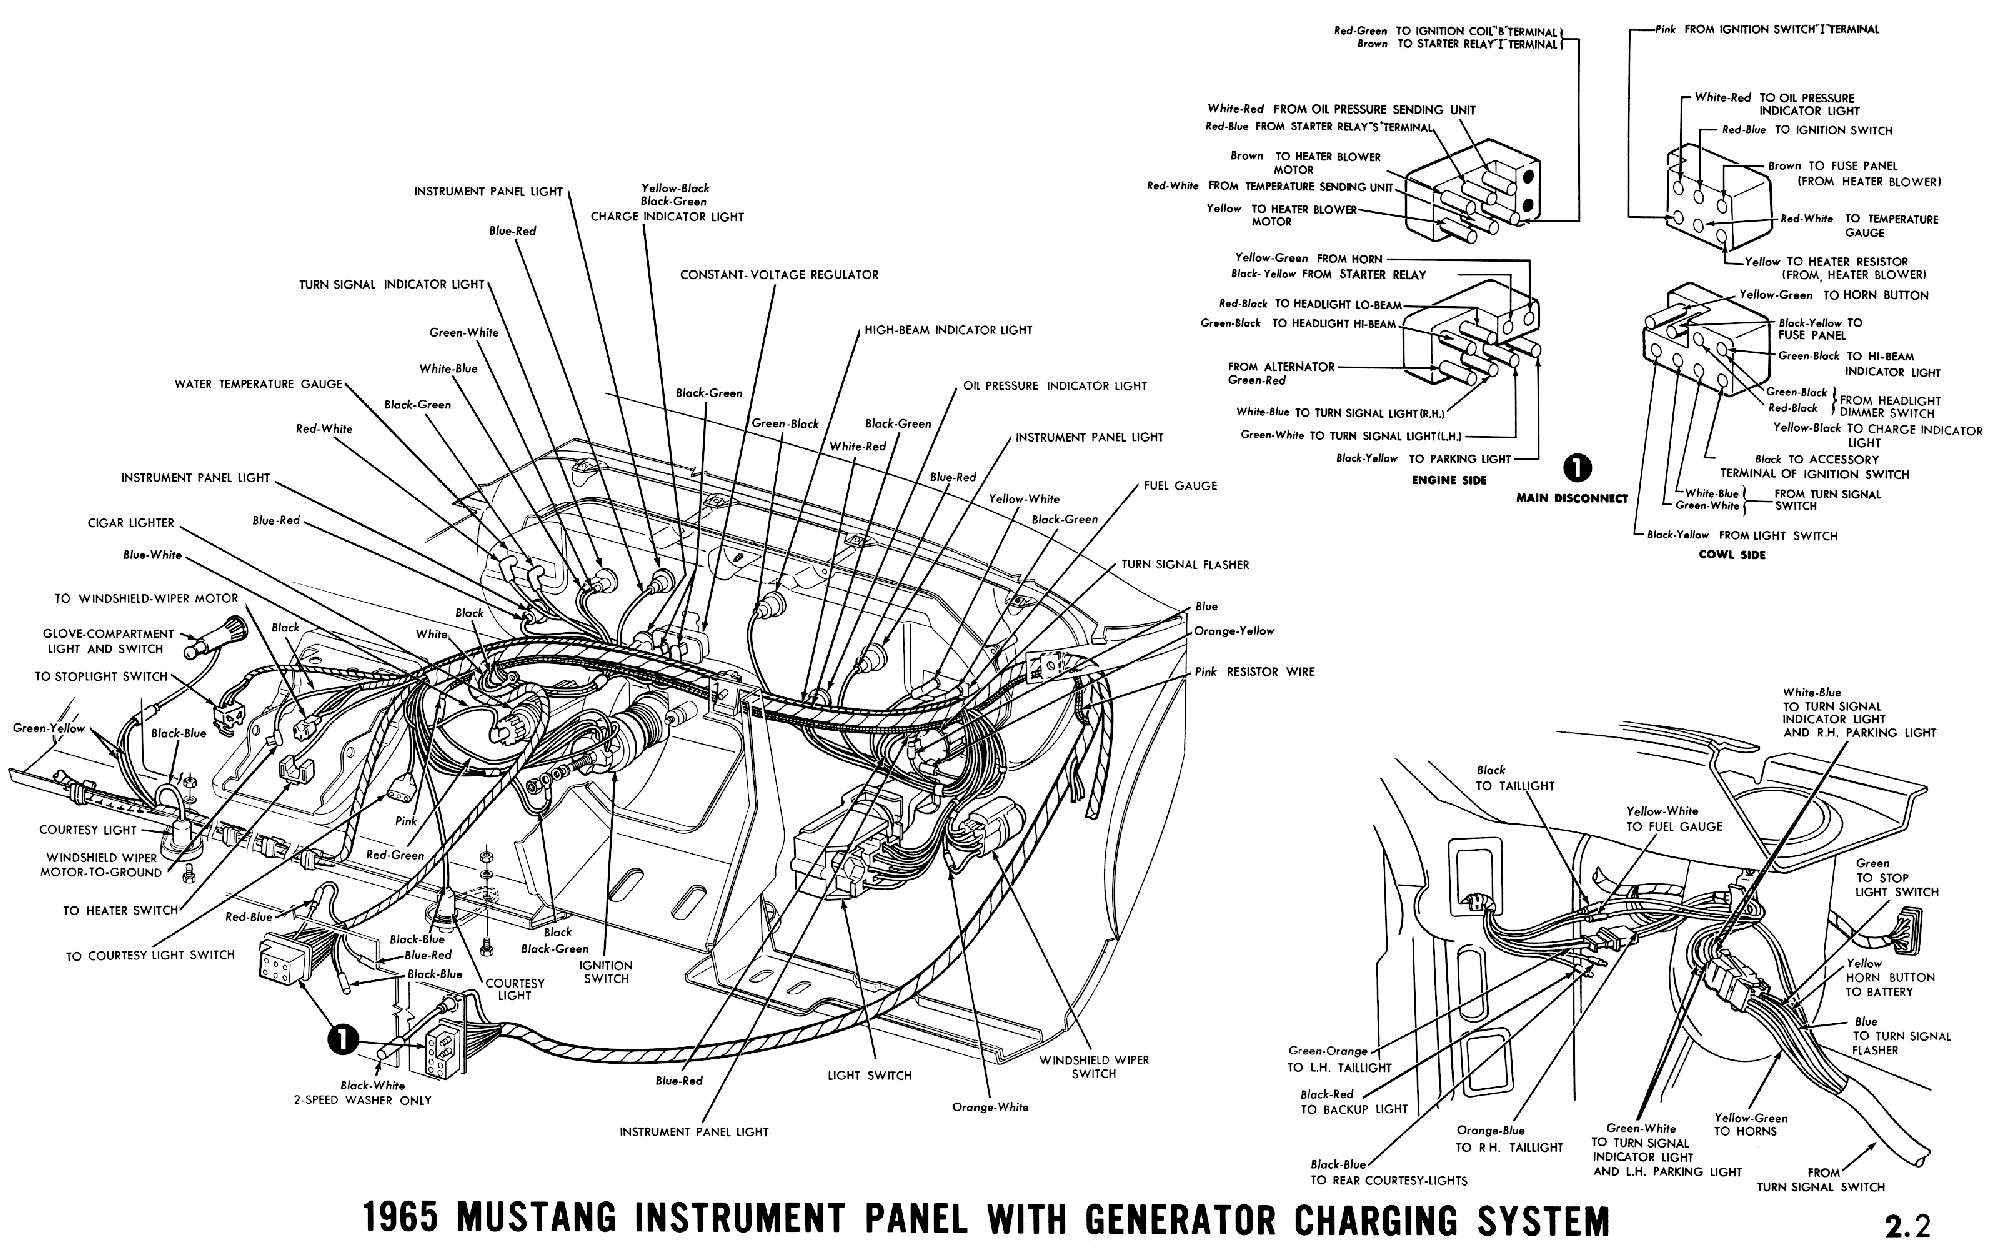 1967 Mustang Cooling System Diagram Block And Schematic Diagrams Wiring 66 Ford Fuse Box Car Wire Center U2022 Rh Grooveguard Co 1968